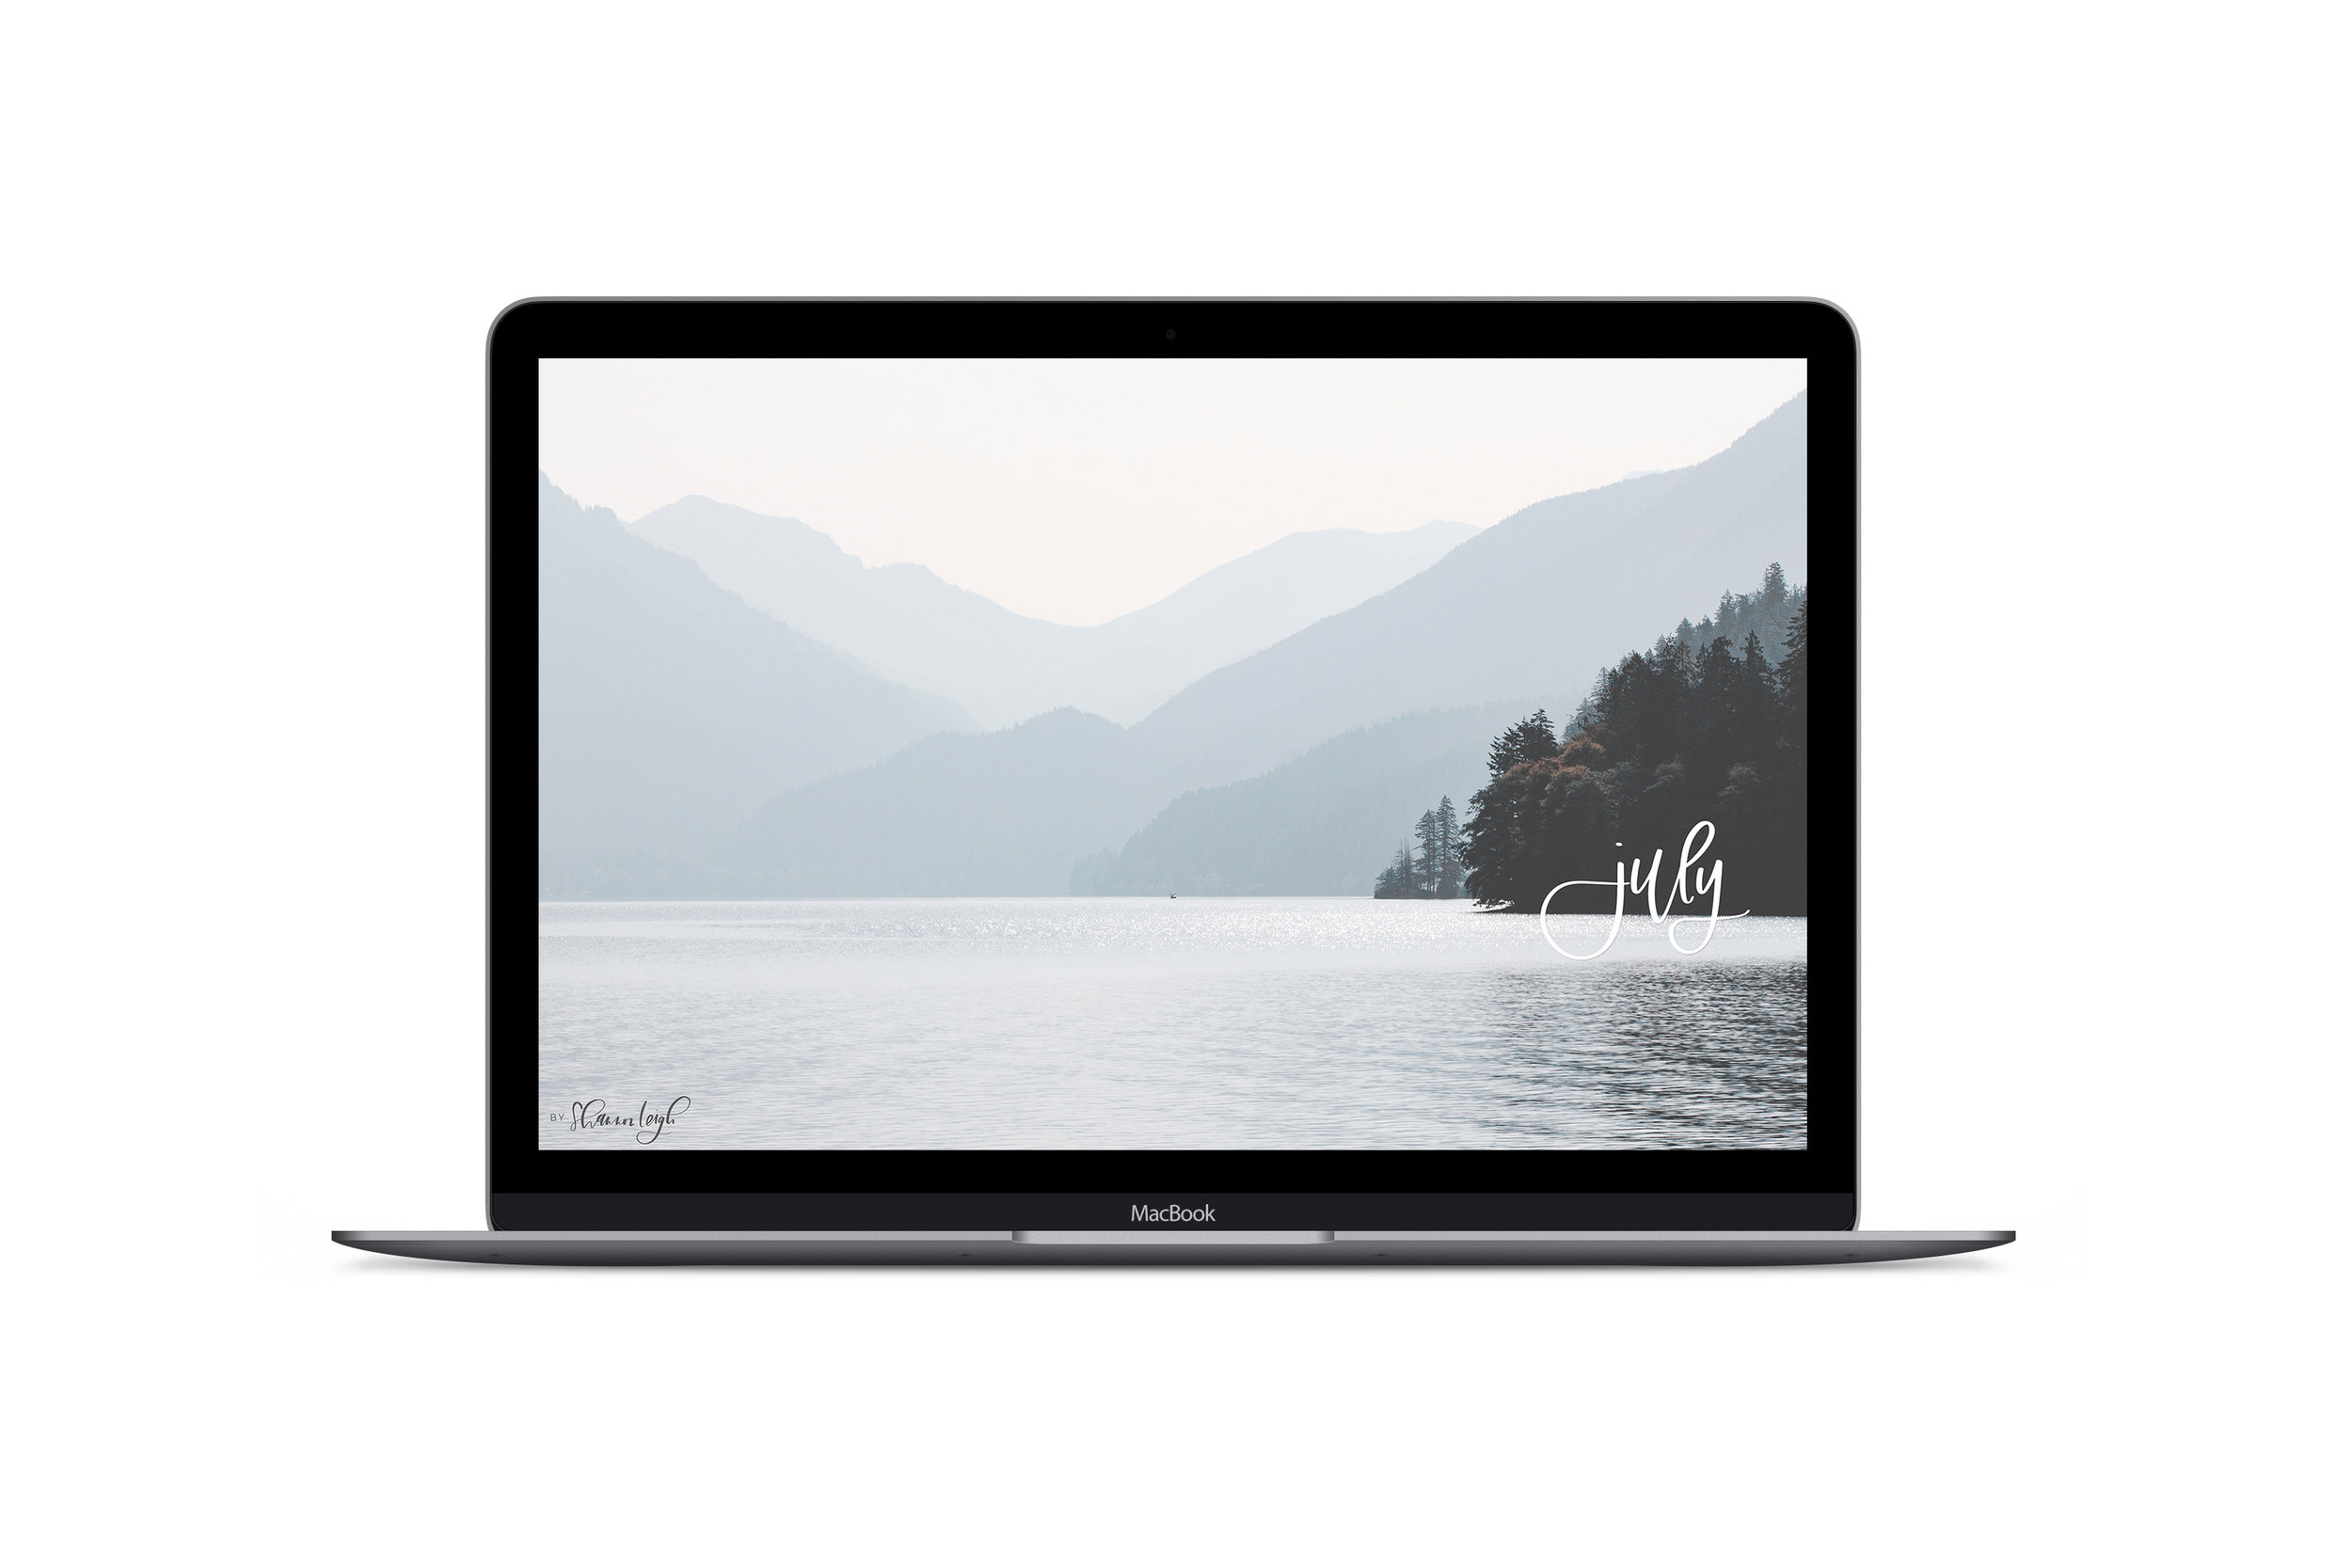 macbook-mock-dribbble21.jpg